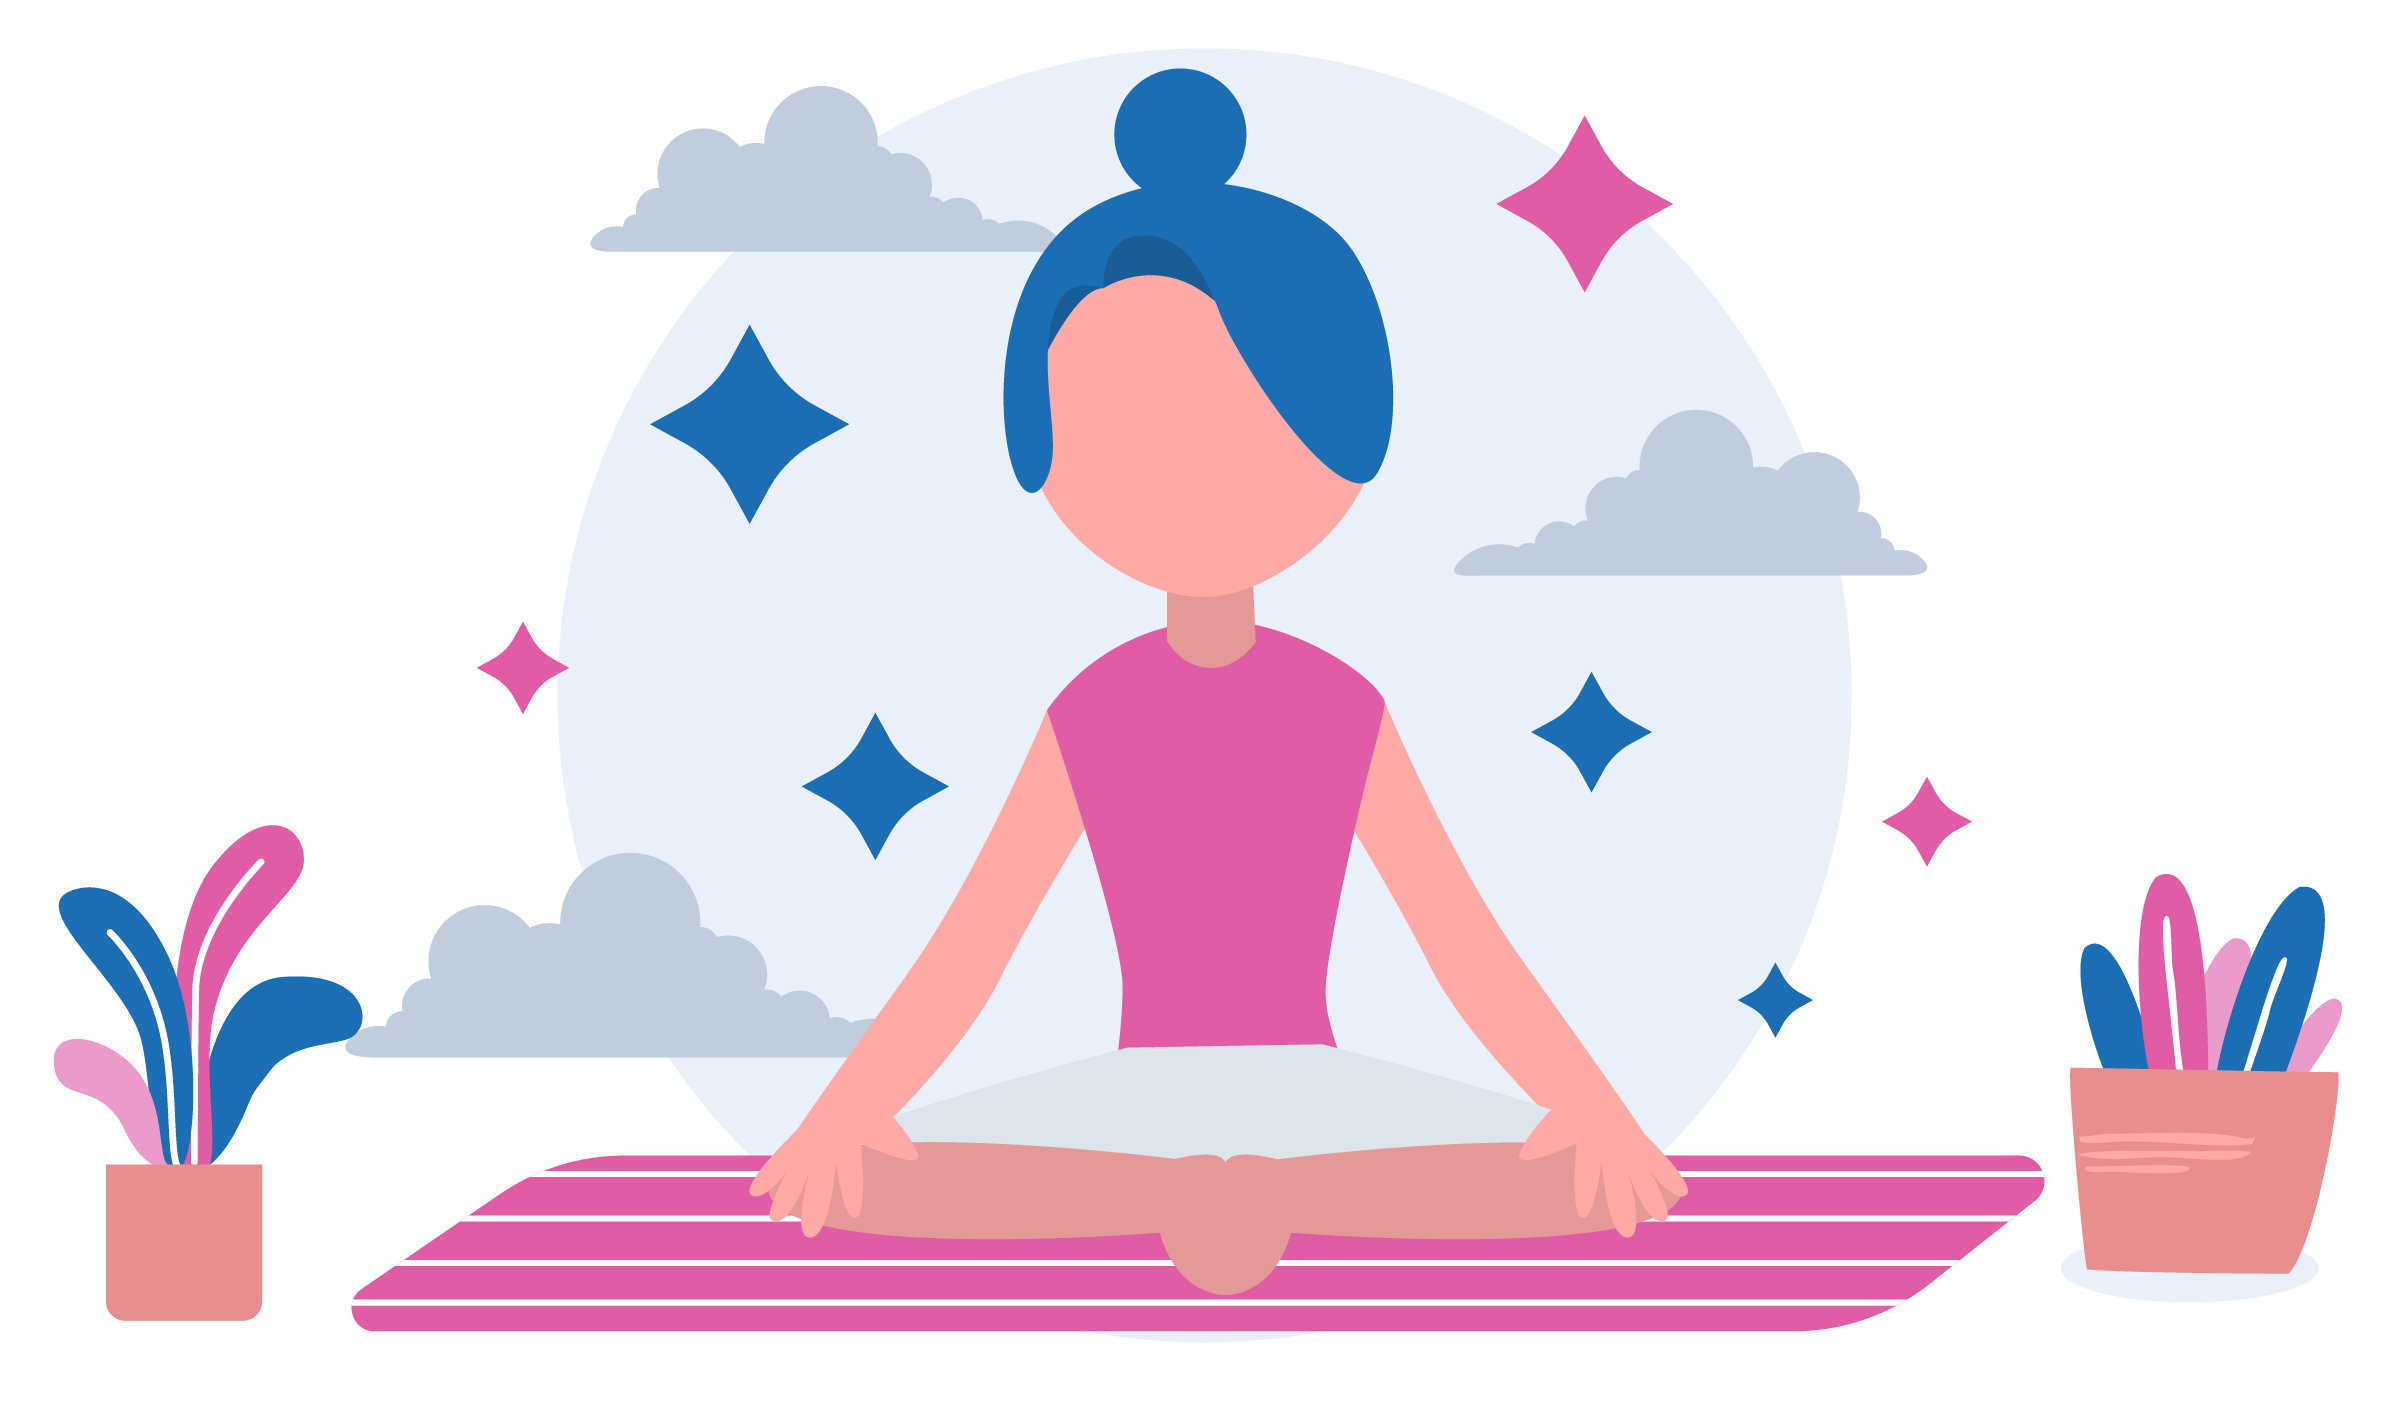 Girl sitting on a yoga mat, thinking of how to clean a yoga mat